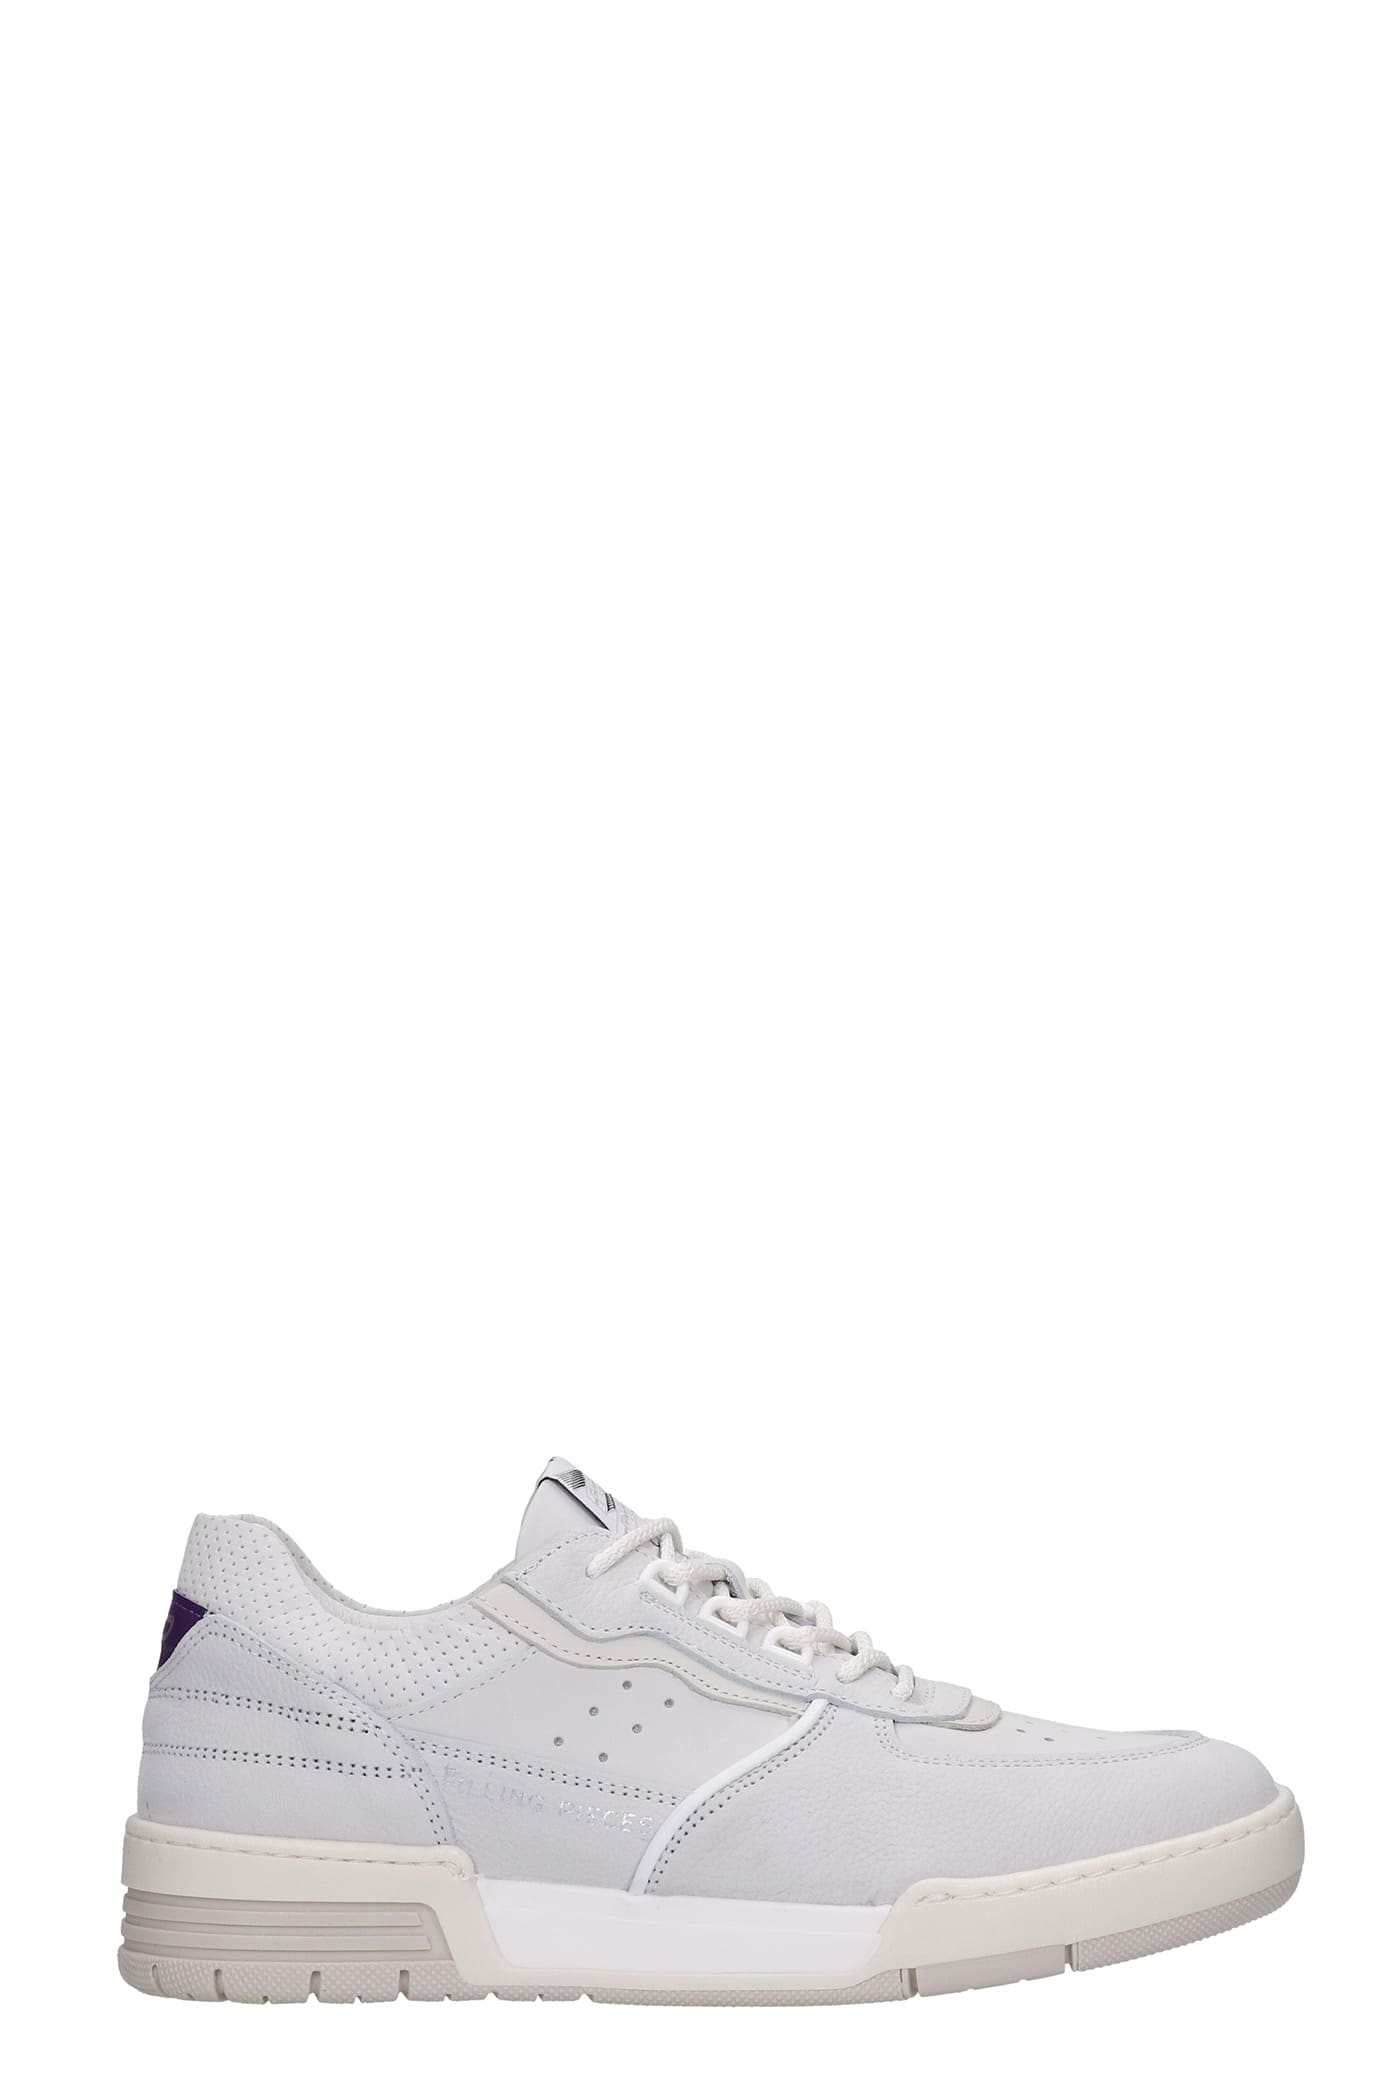 Curb Era Sneakers In White Leather